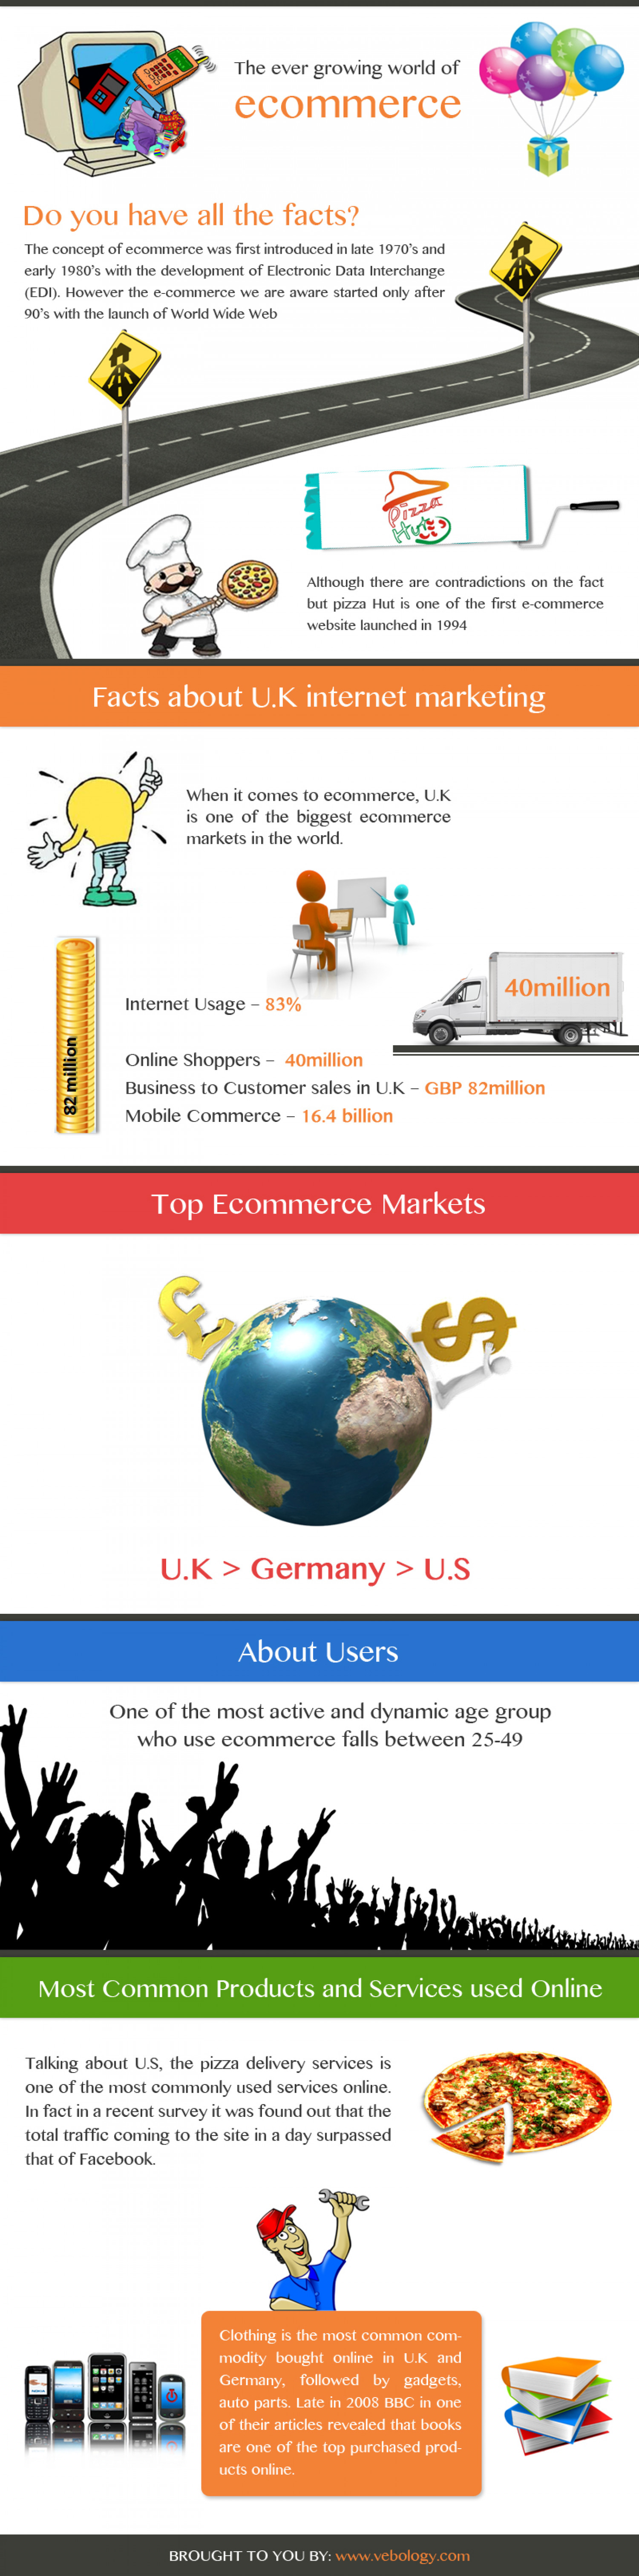 The Ever Growing World of Ecommerce Infographic